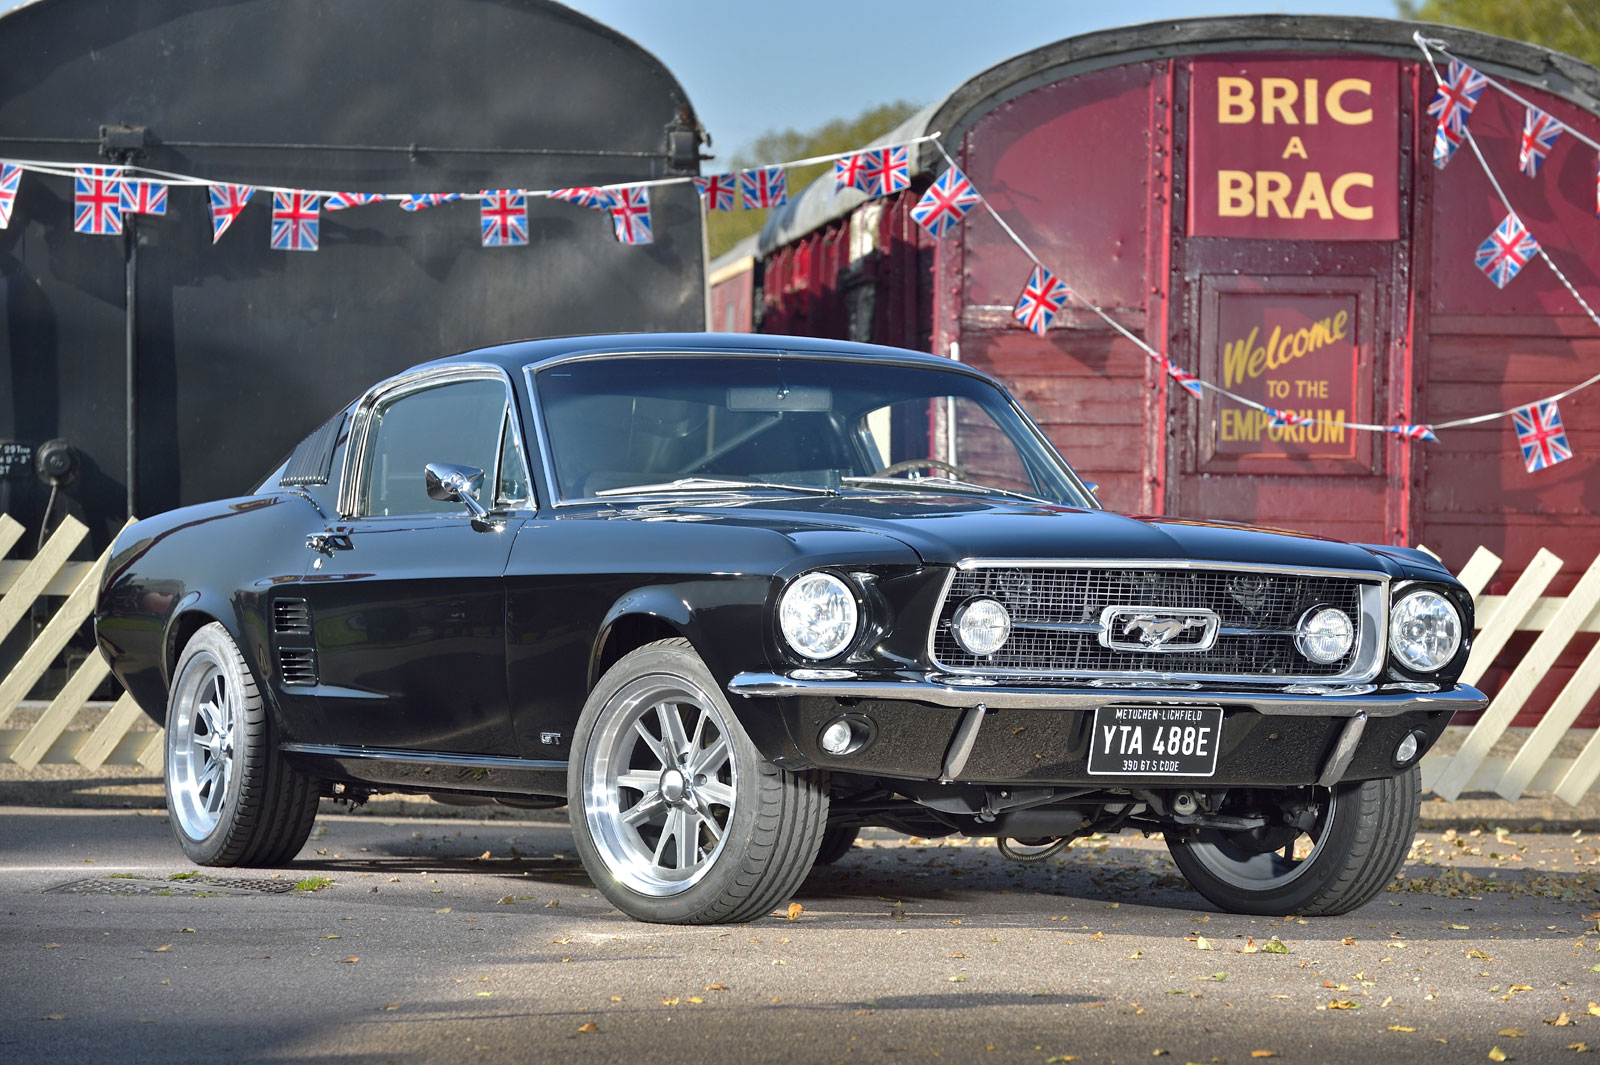 DESPITE PANDEMIC H&H ACHIEVES £600,000 & OVER 70% SOLD, LED BY A FAST FORD